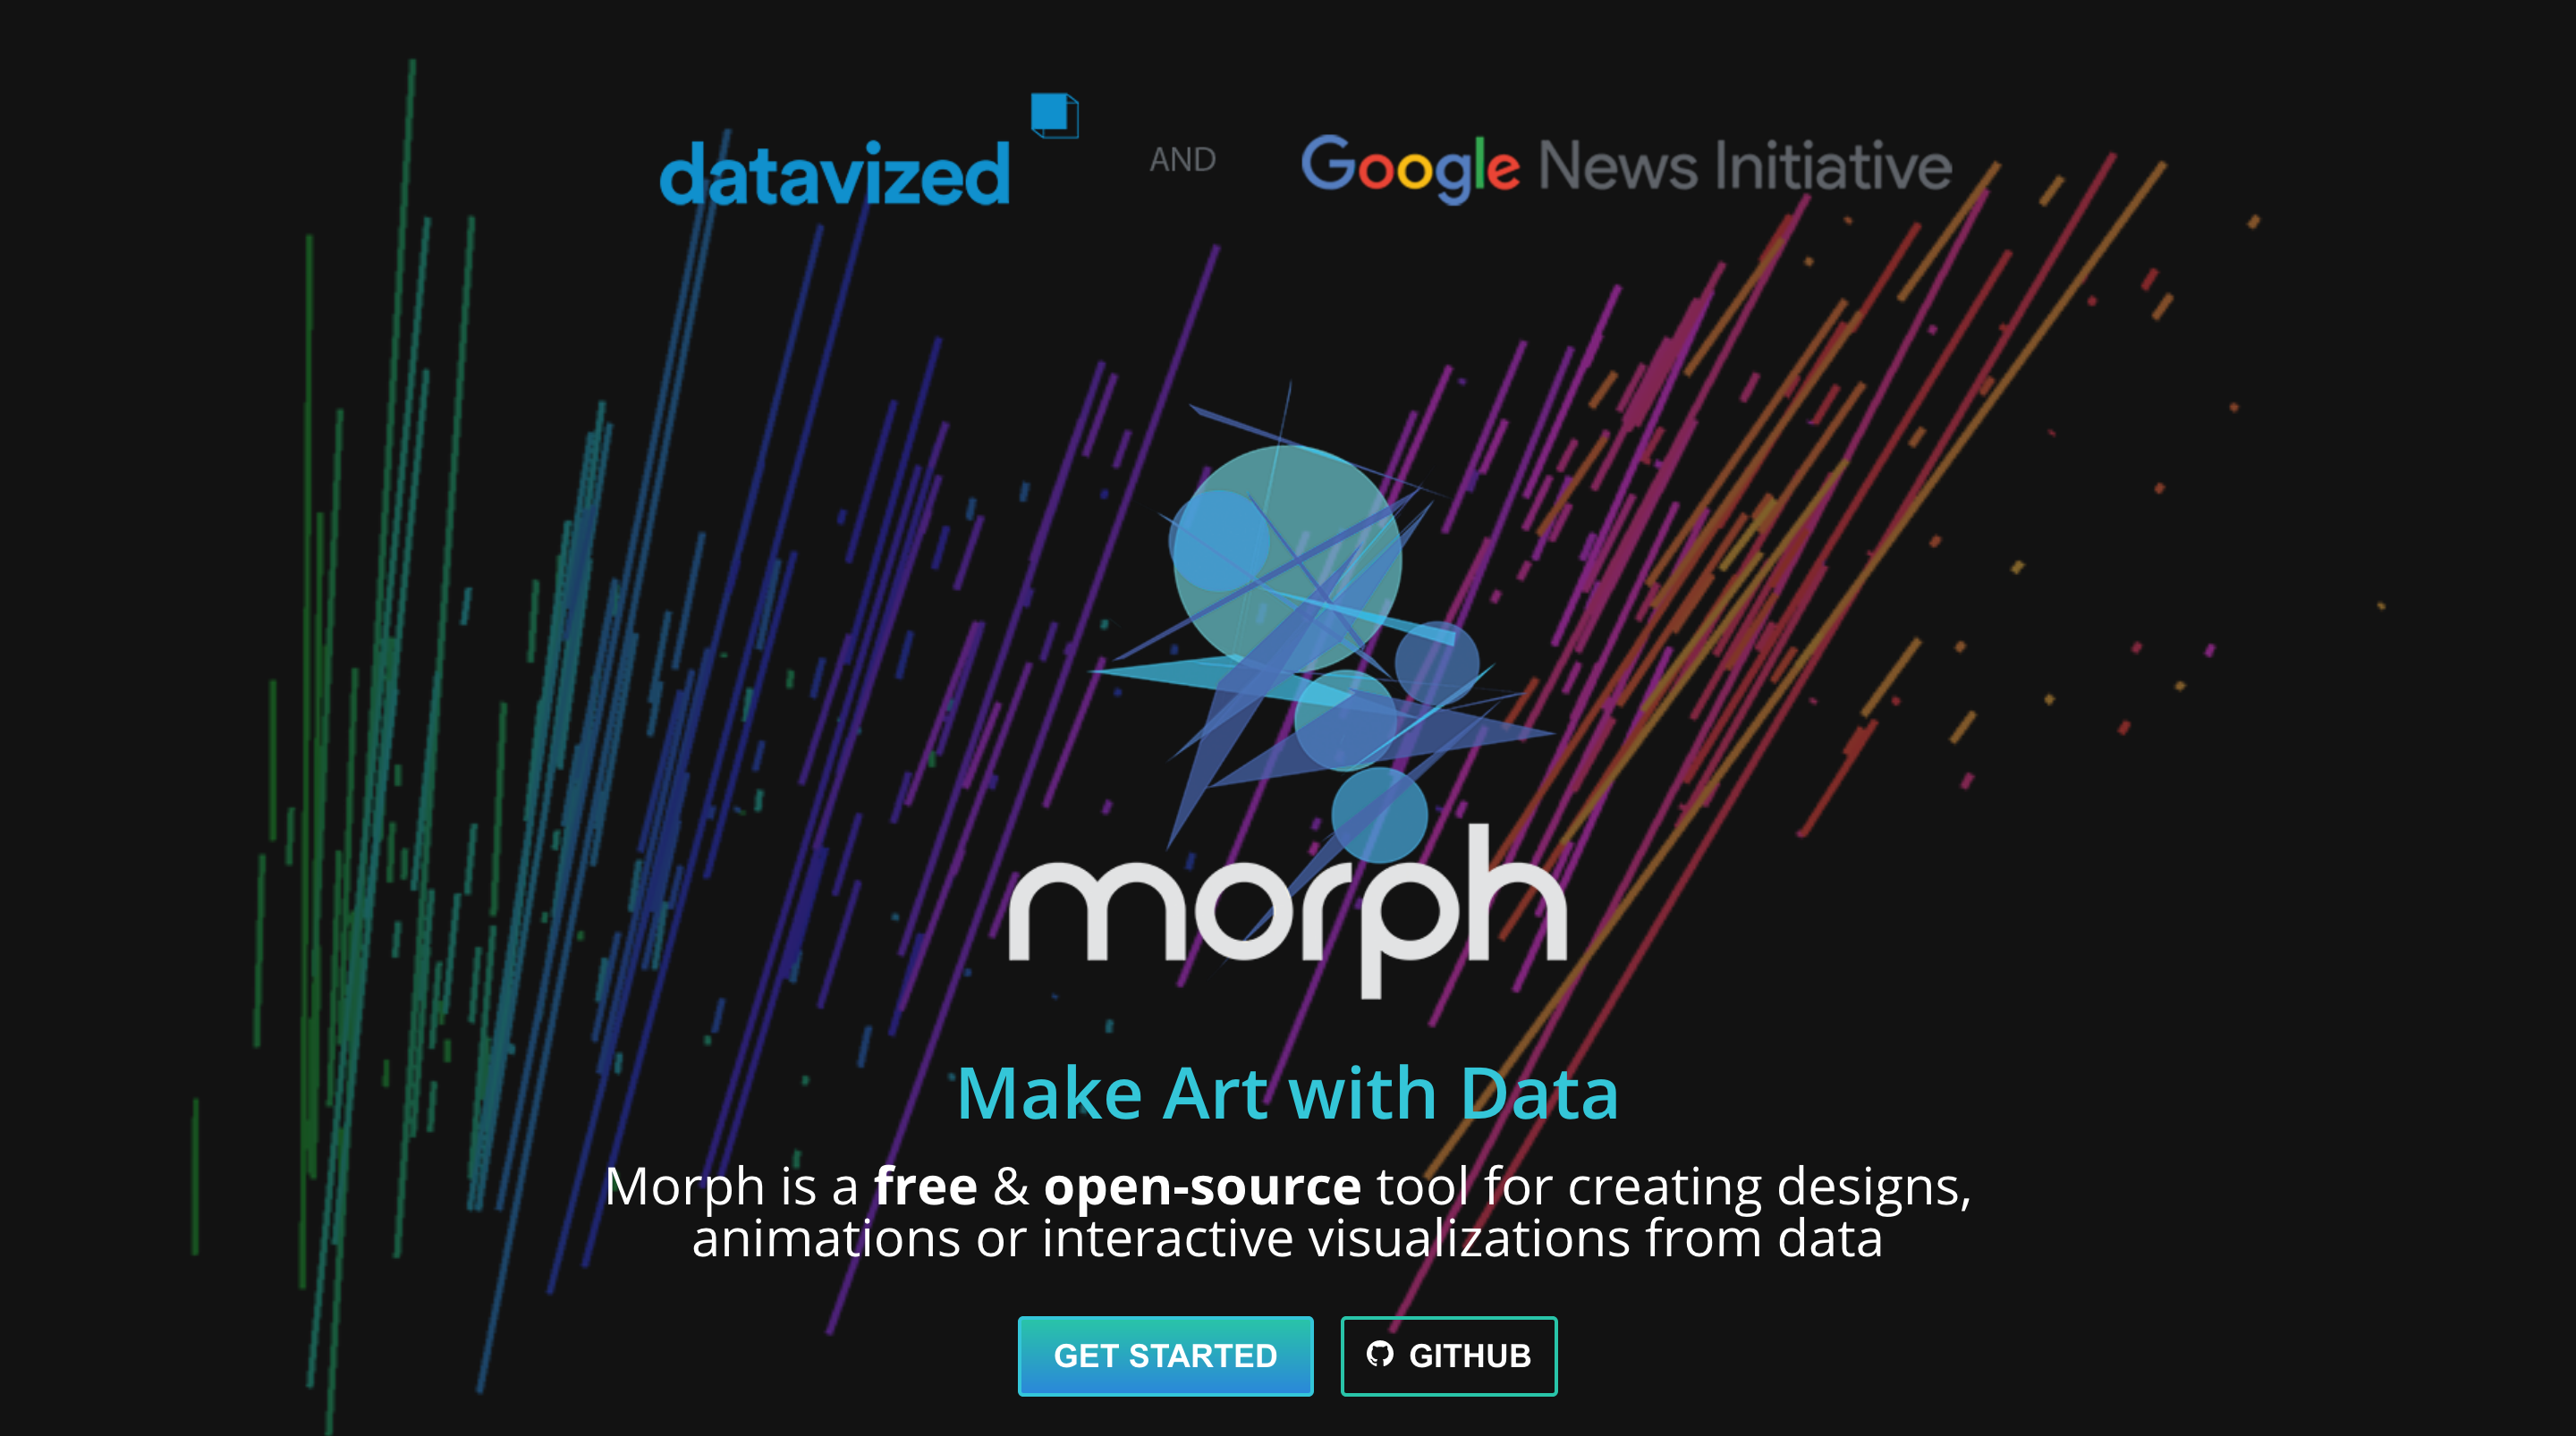 GitHub - datavized/morph: Morph is a free and open-source tool for